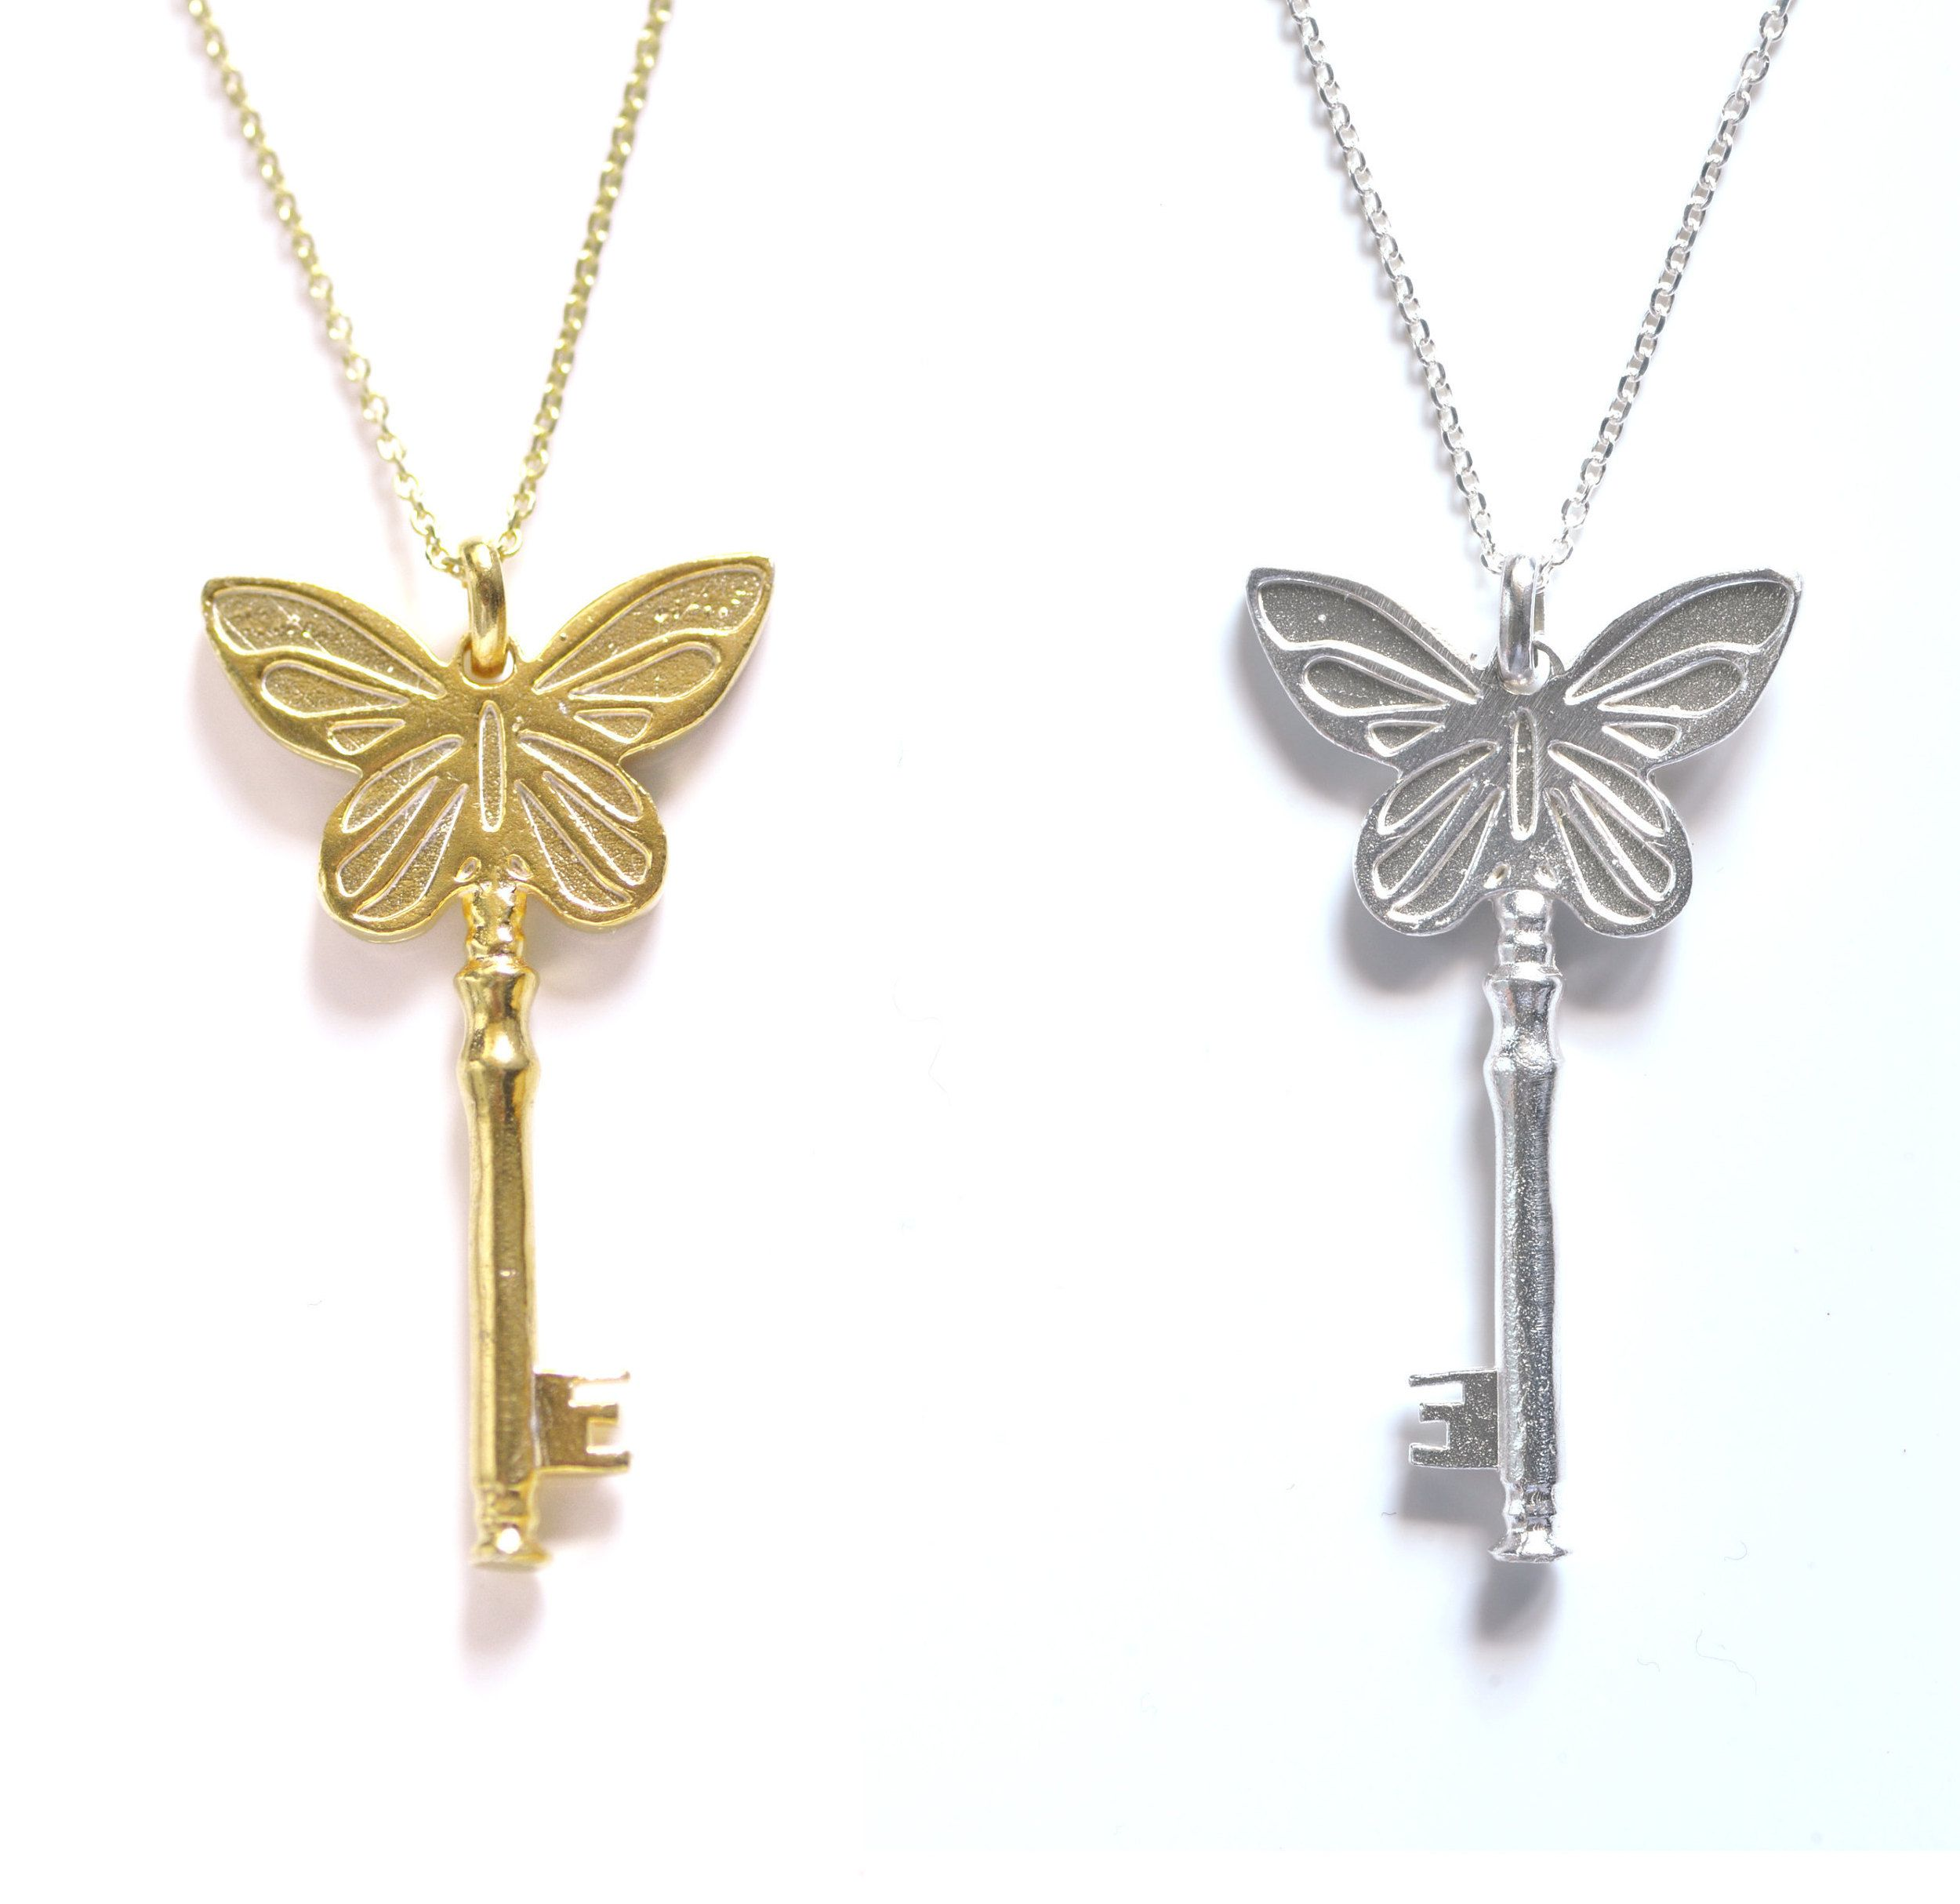 boho chic jewelry gift young woman butterfly wing pendant sterling nature necklaces for women unusual gifts real butterfly wings jewelry